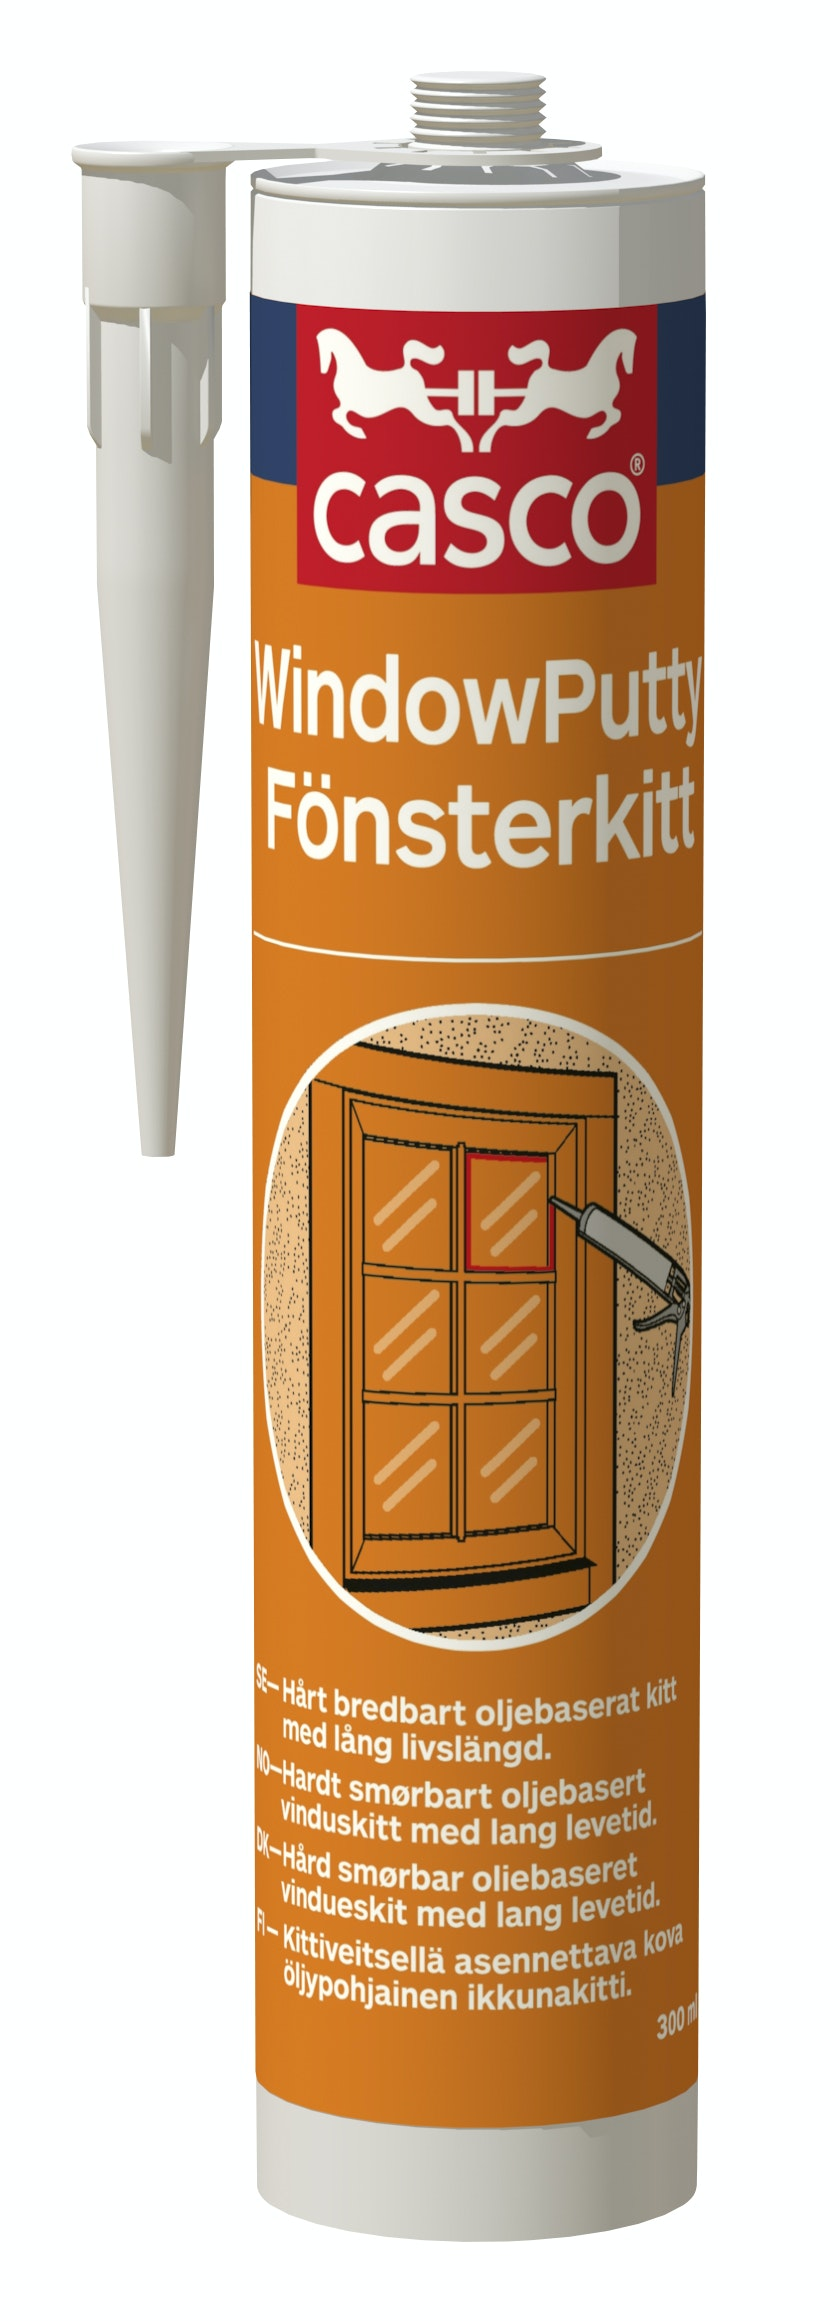 Fogmassa Casco WindowPutty Fönsterkitt Beige/Natur 300ml